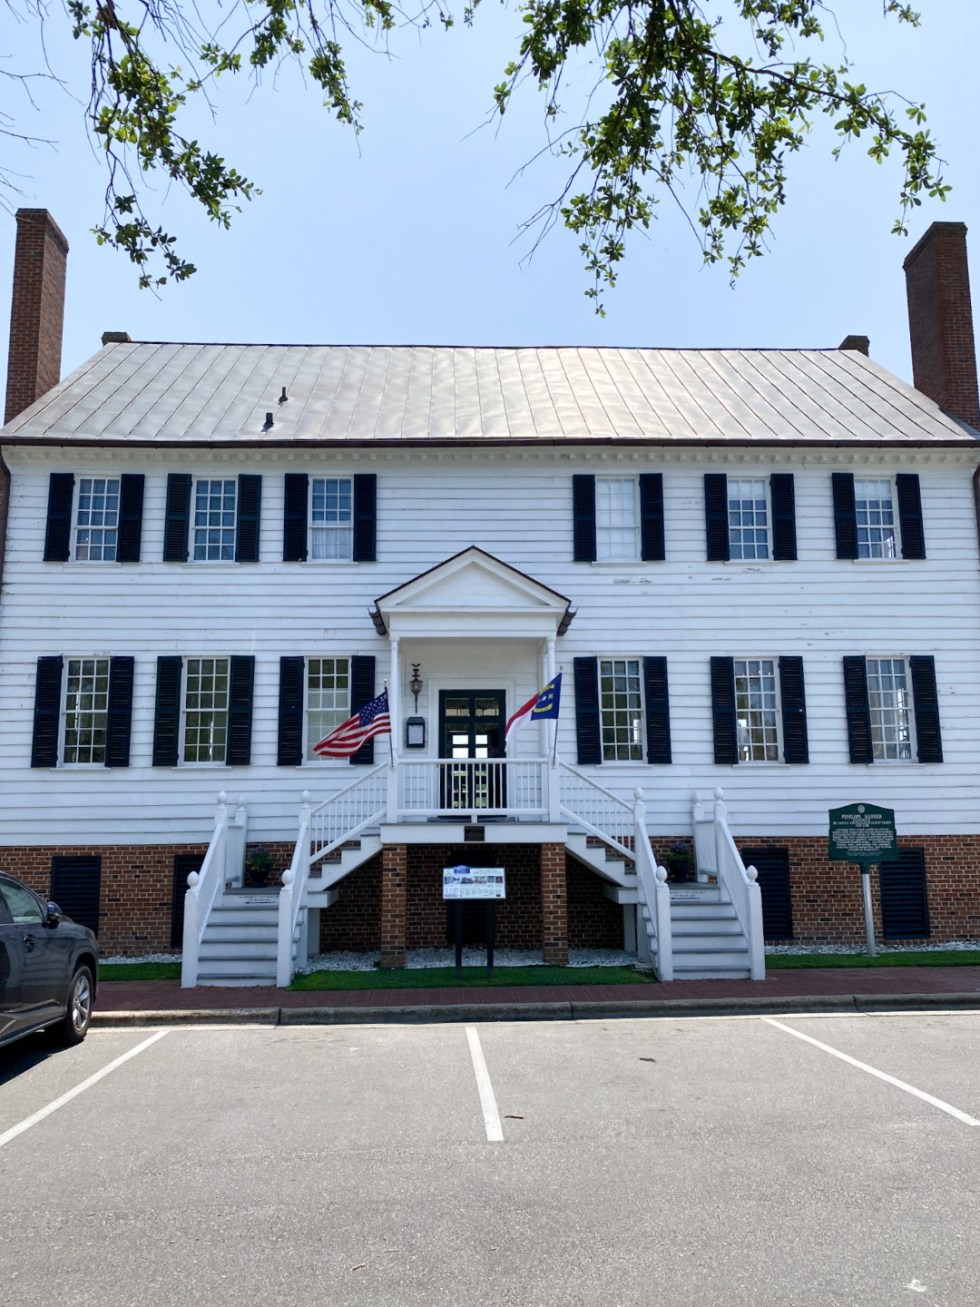 Top 10 Best Things to Do in Edenton, NC: A Complete Travel Guide - I'm Fixin' To - @imfixintoblog | Edenton Travel Guide by popular NC travel guid, I'm Fixin' To: image of the Penelope Barker Home.